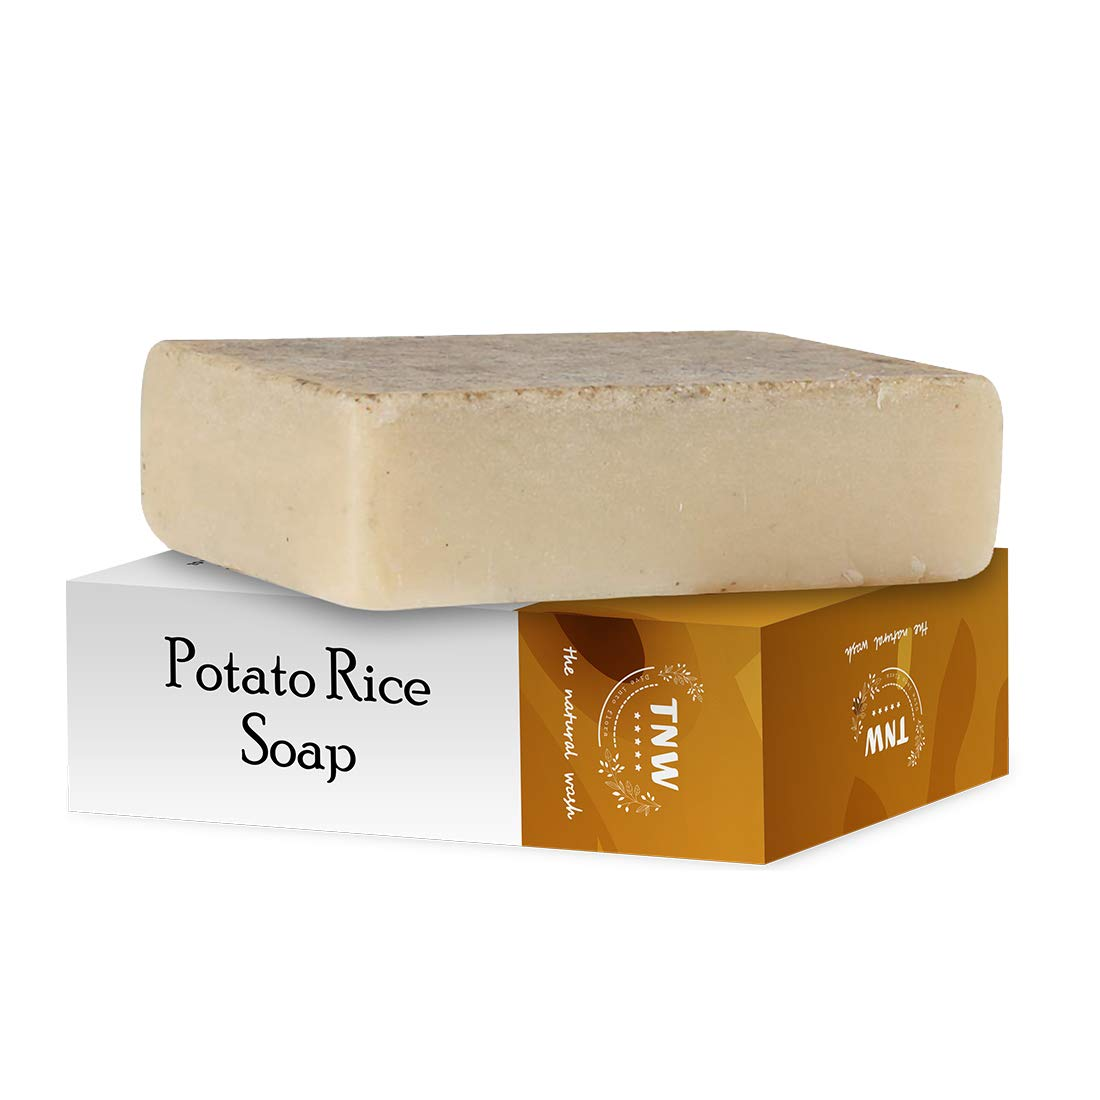 TNW-THE NATURAL WASH - The Natural Wash Handmade Potato Rice Soap For Tanning & Pigmentation For Oily Skin (Paraben/Sulphate/Dye/Silicon Free) - 100 g